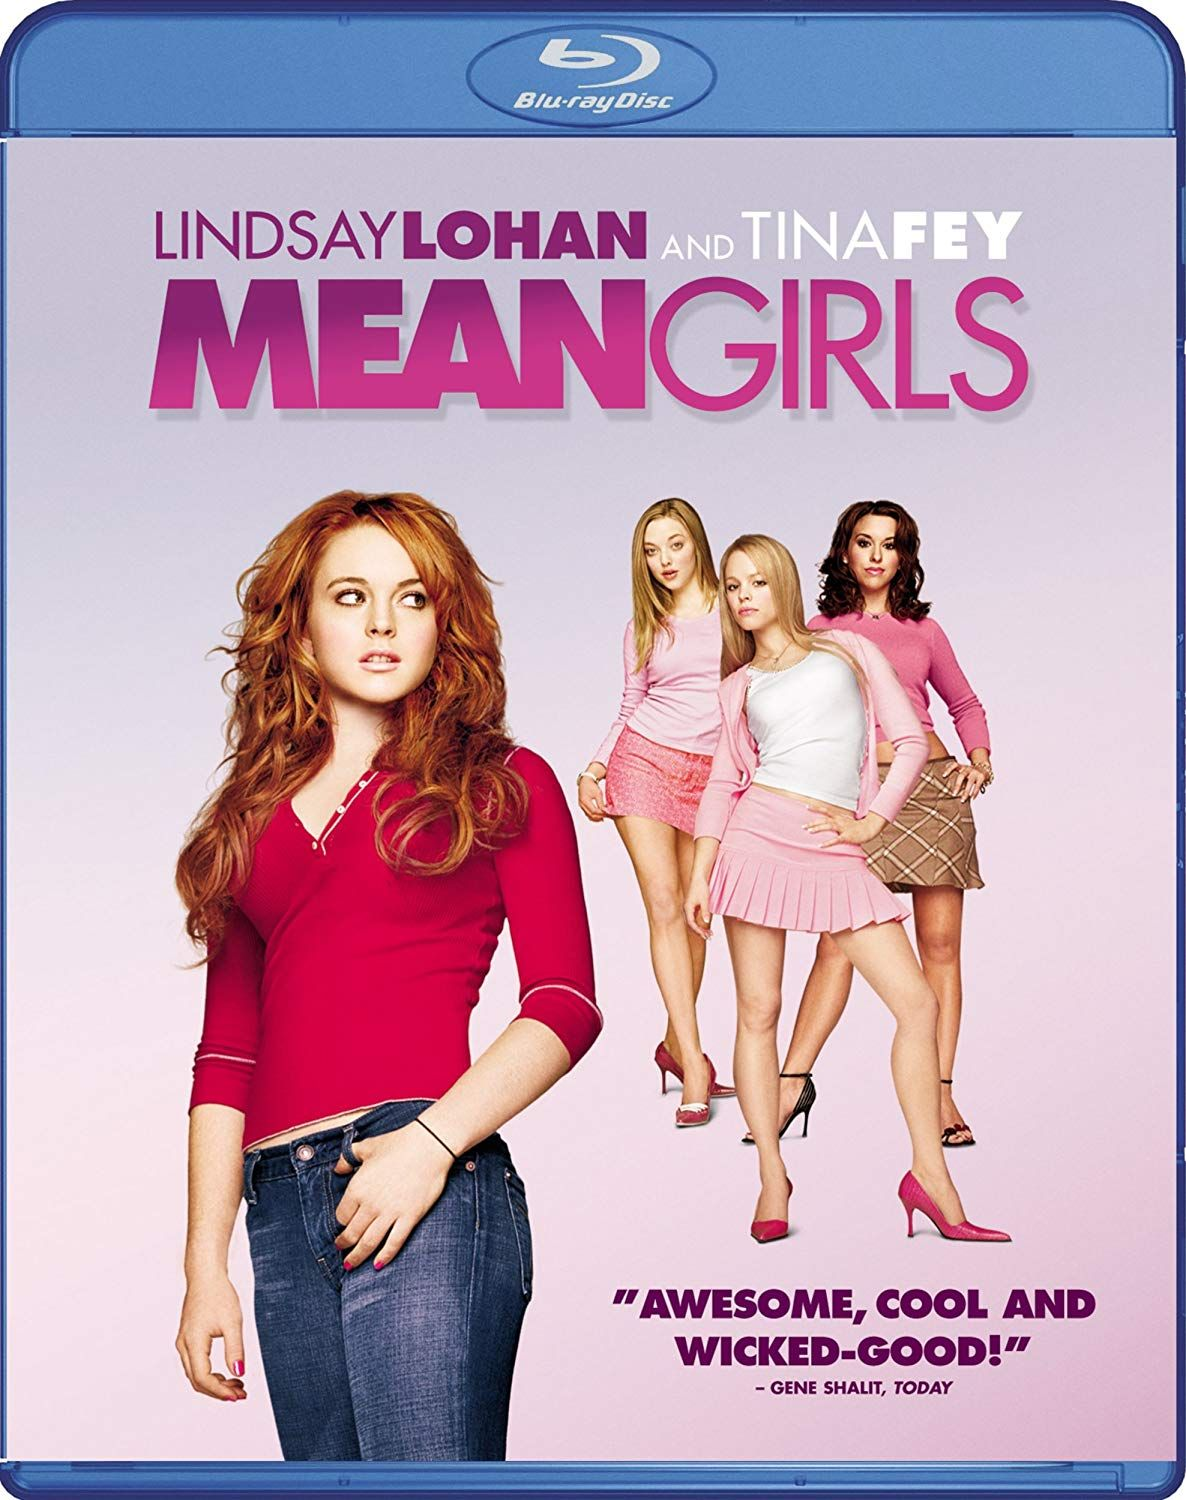 Pin by CK on CHICAGOLAND Girls night movies, Mean girls